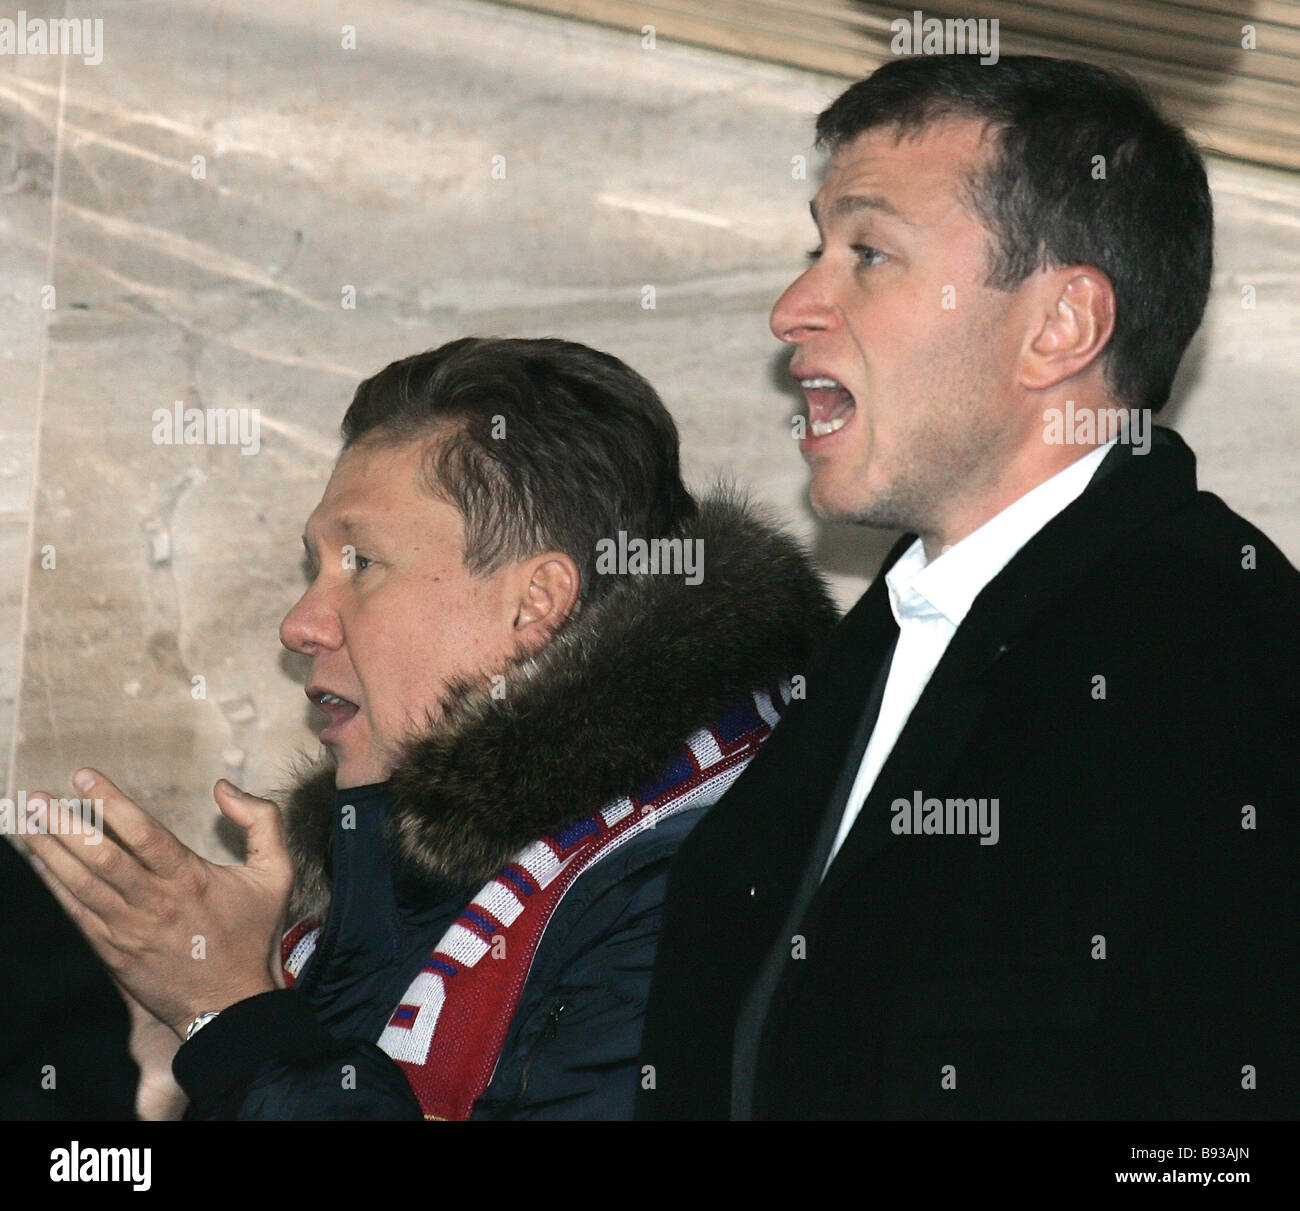 17 October 2007 Alexei Miller head of Gazprom and Governor of Chukotka Roman Abramovich during the England Russia - Stock Image